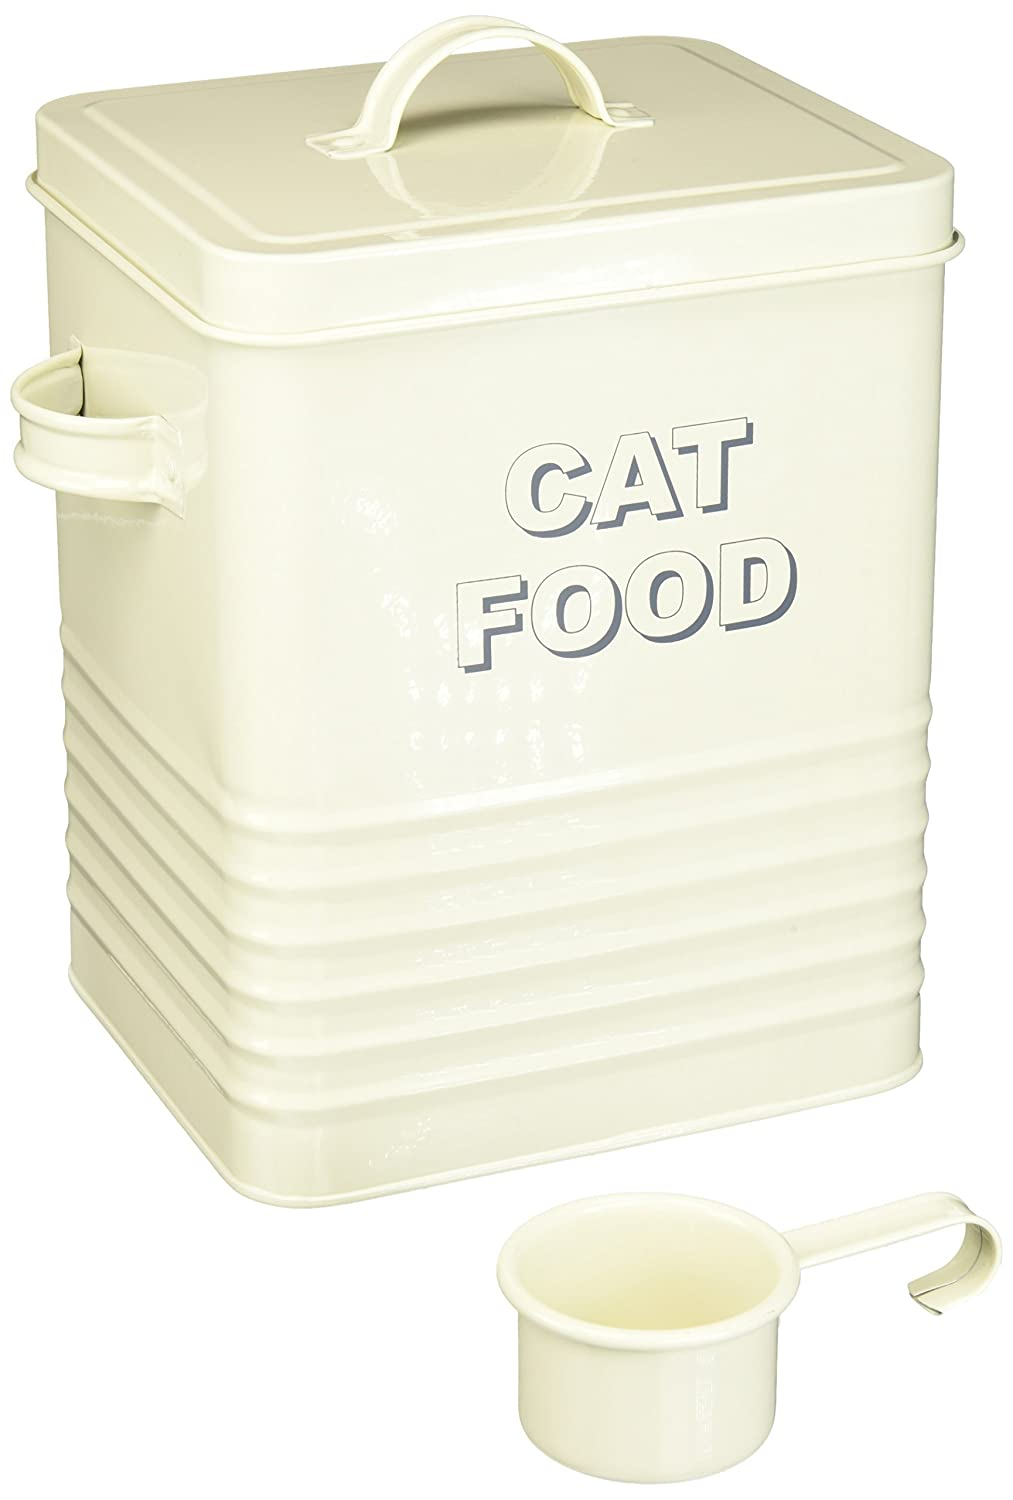 The Leonardo Collection LP22218 Sweet Home Cream Cat Food Storage Tin with Scoop